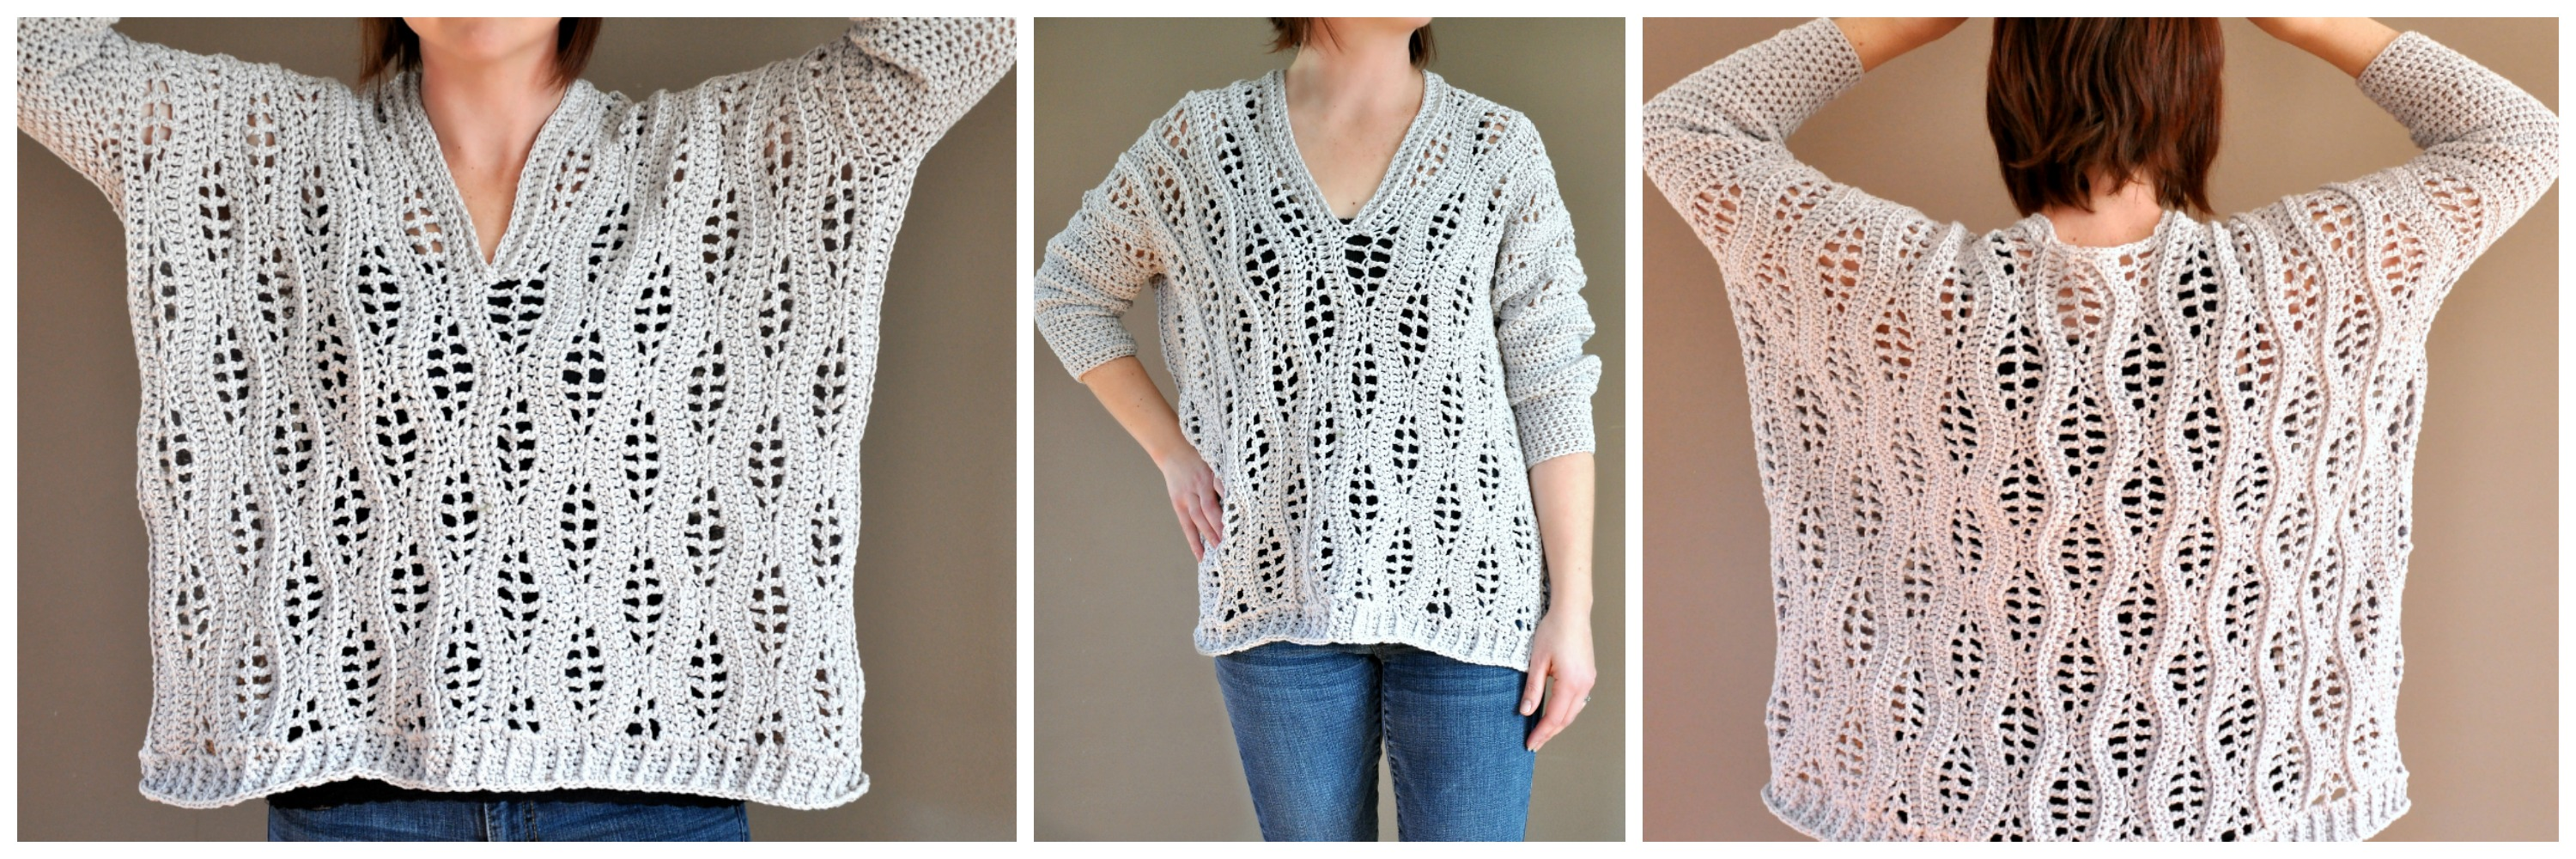 Salena Sweater crochet pattern by Sincerely, Pam